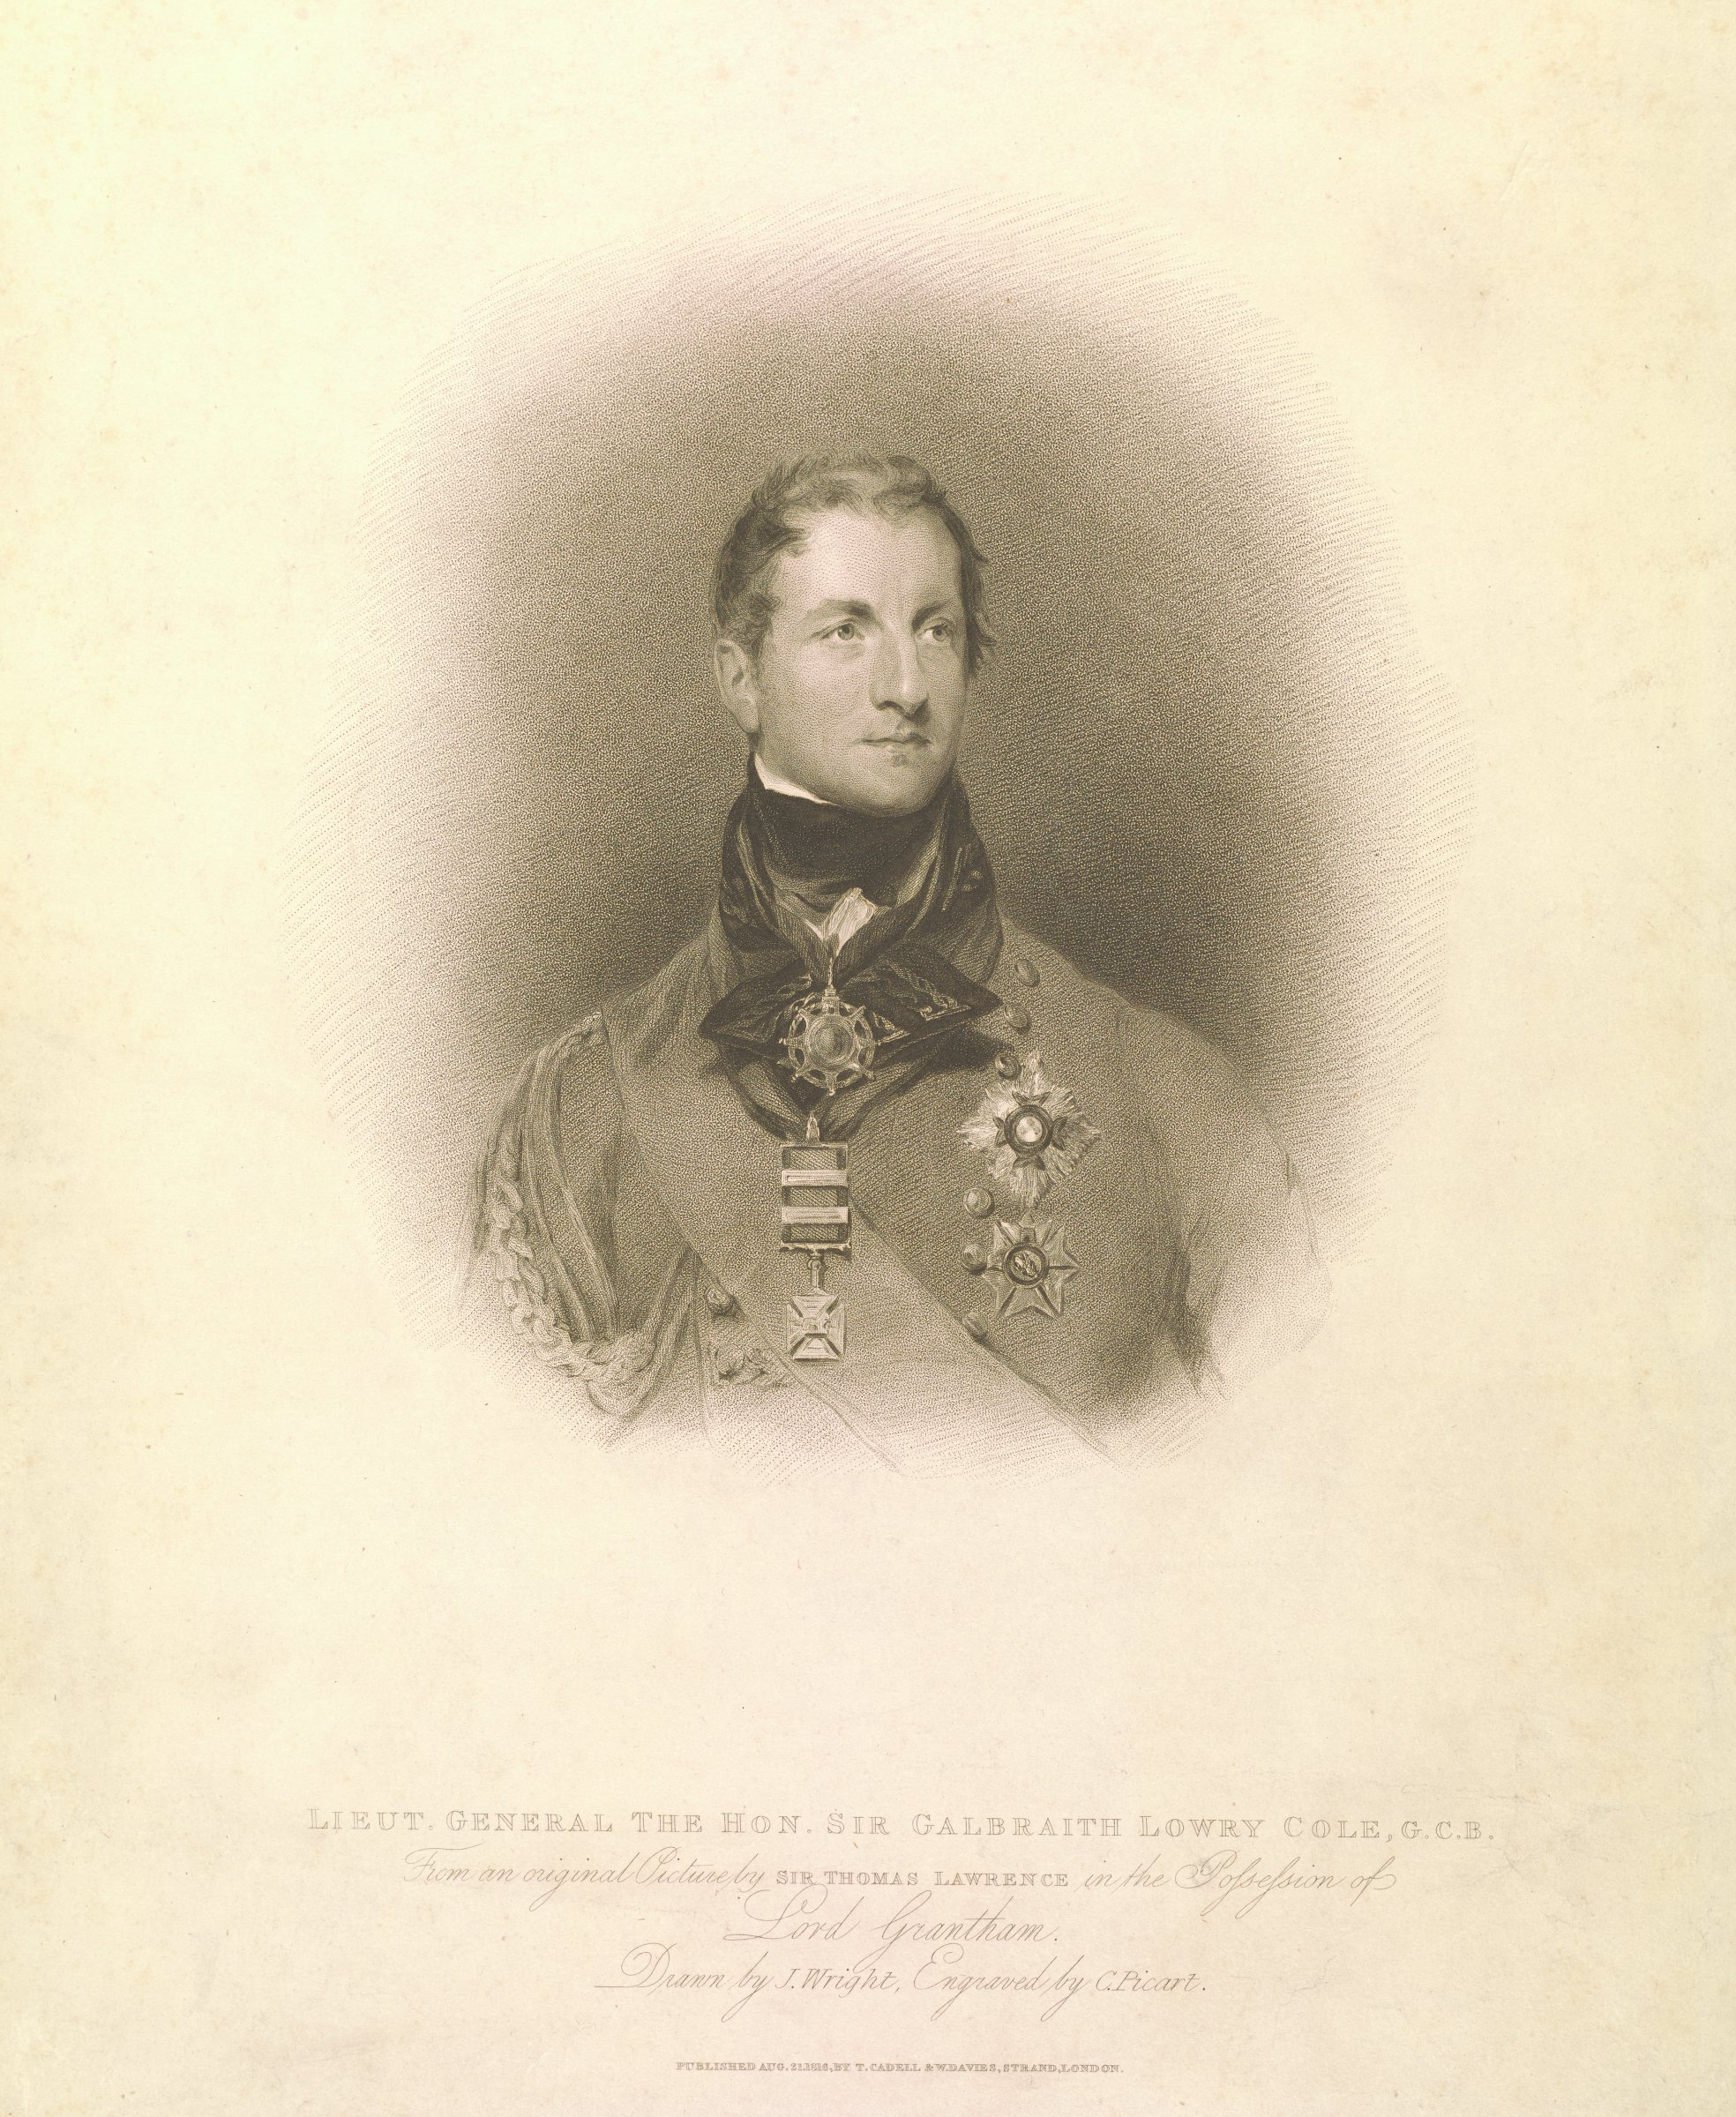 Portrait of man in uniform wearing multiple medals set within a borderless oval shape.